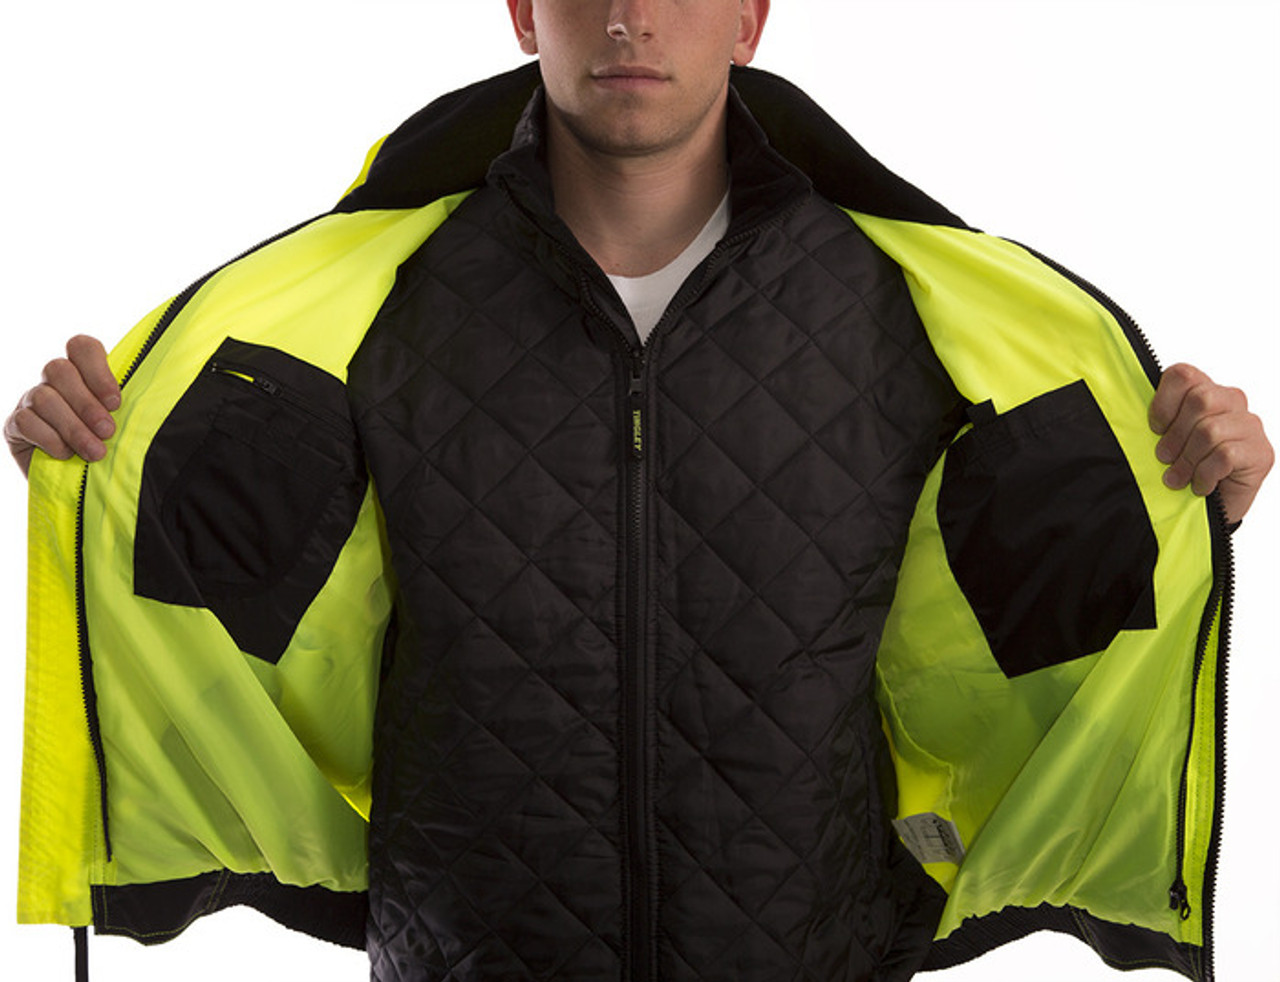 Tingley Bomber 3 1 Class 3 Winter Jacket With Removable